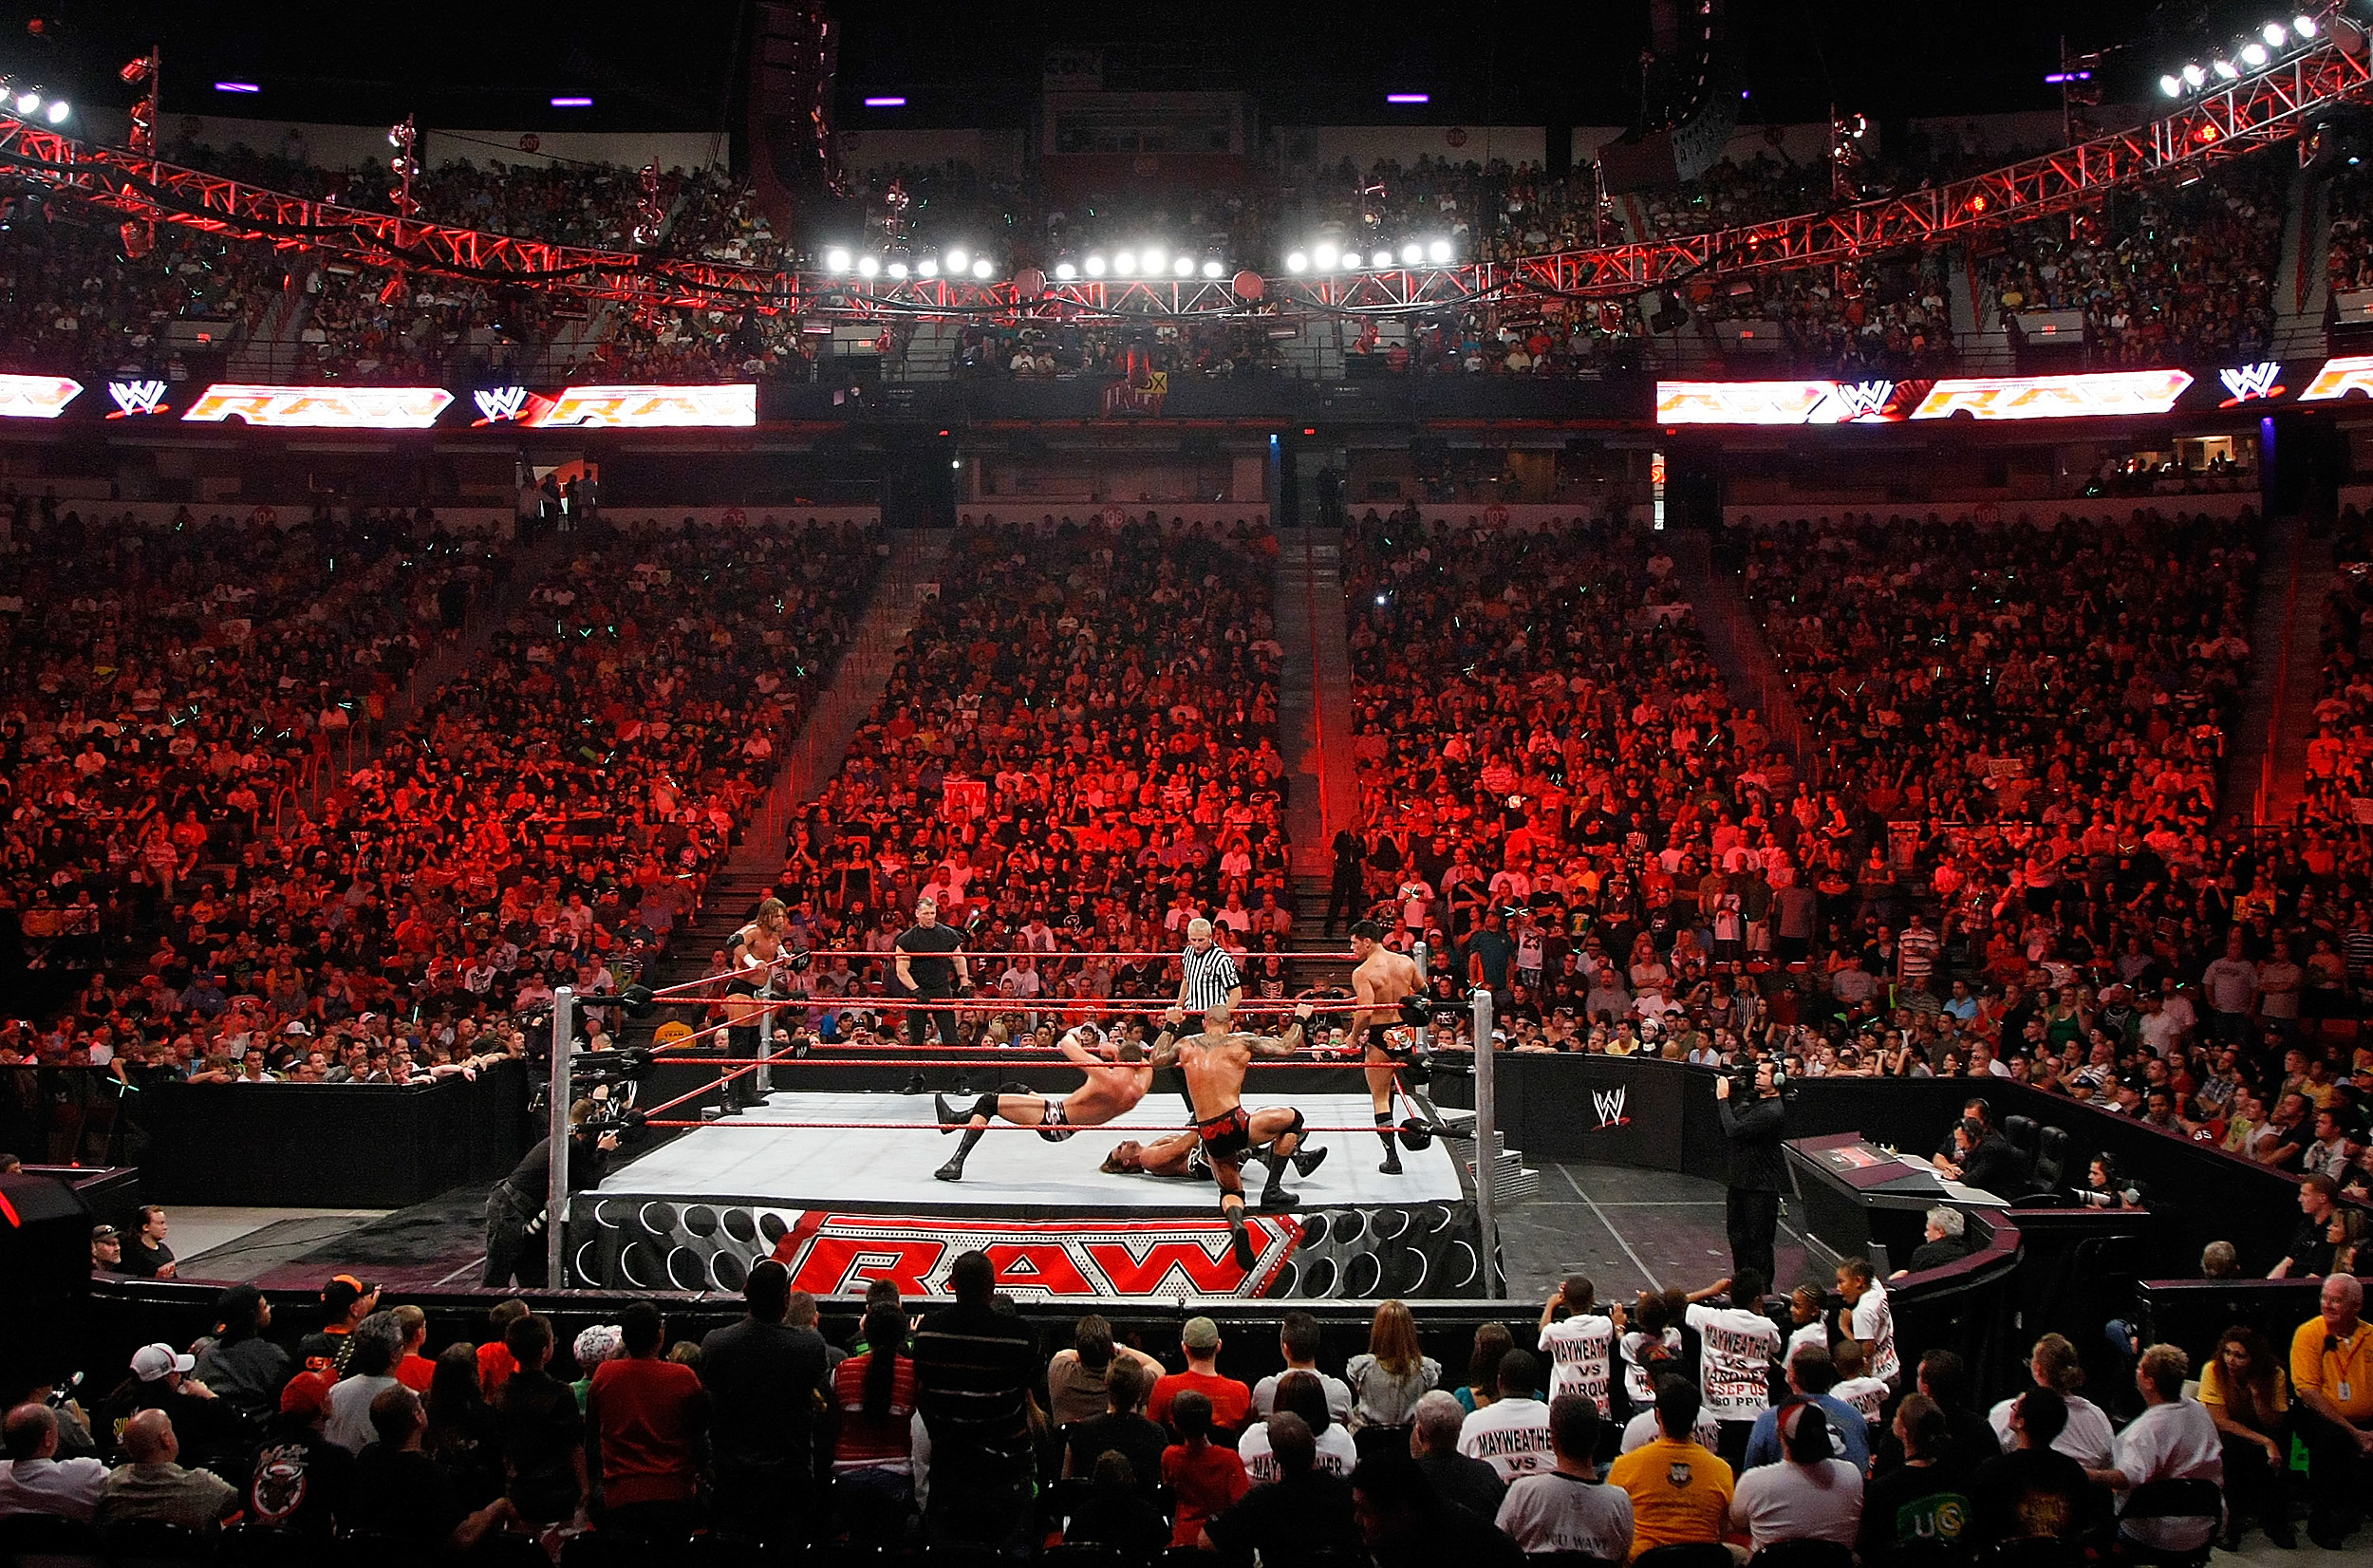 WWE Monday Night Raw In Las Vegas